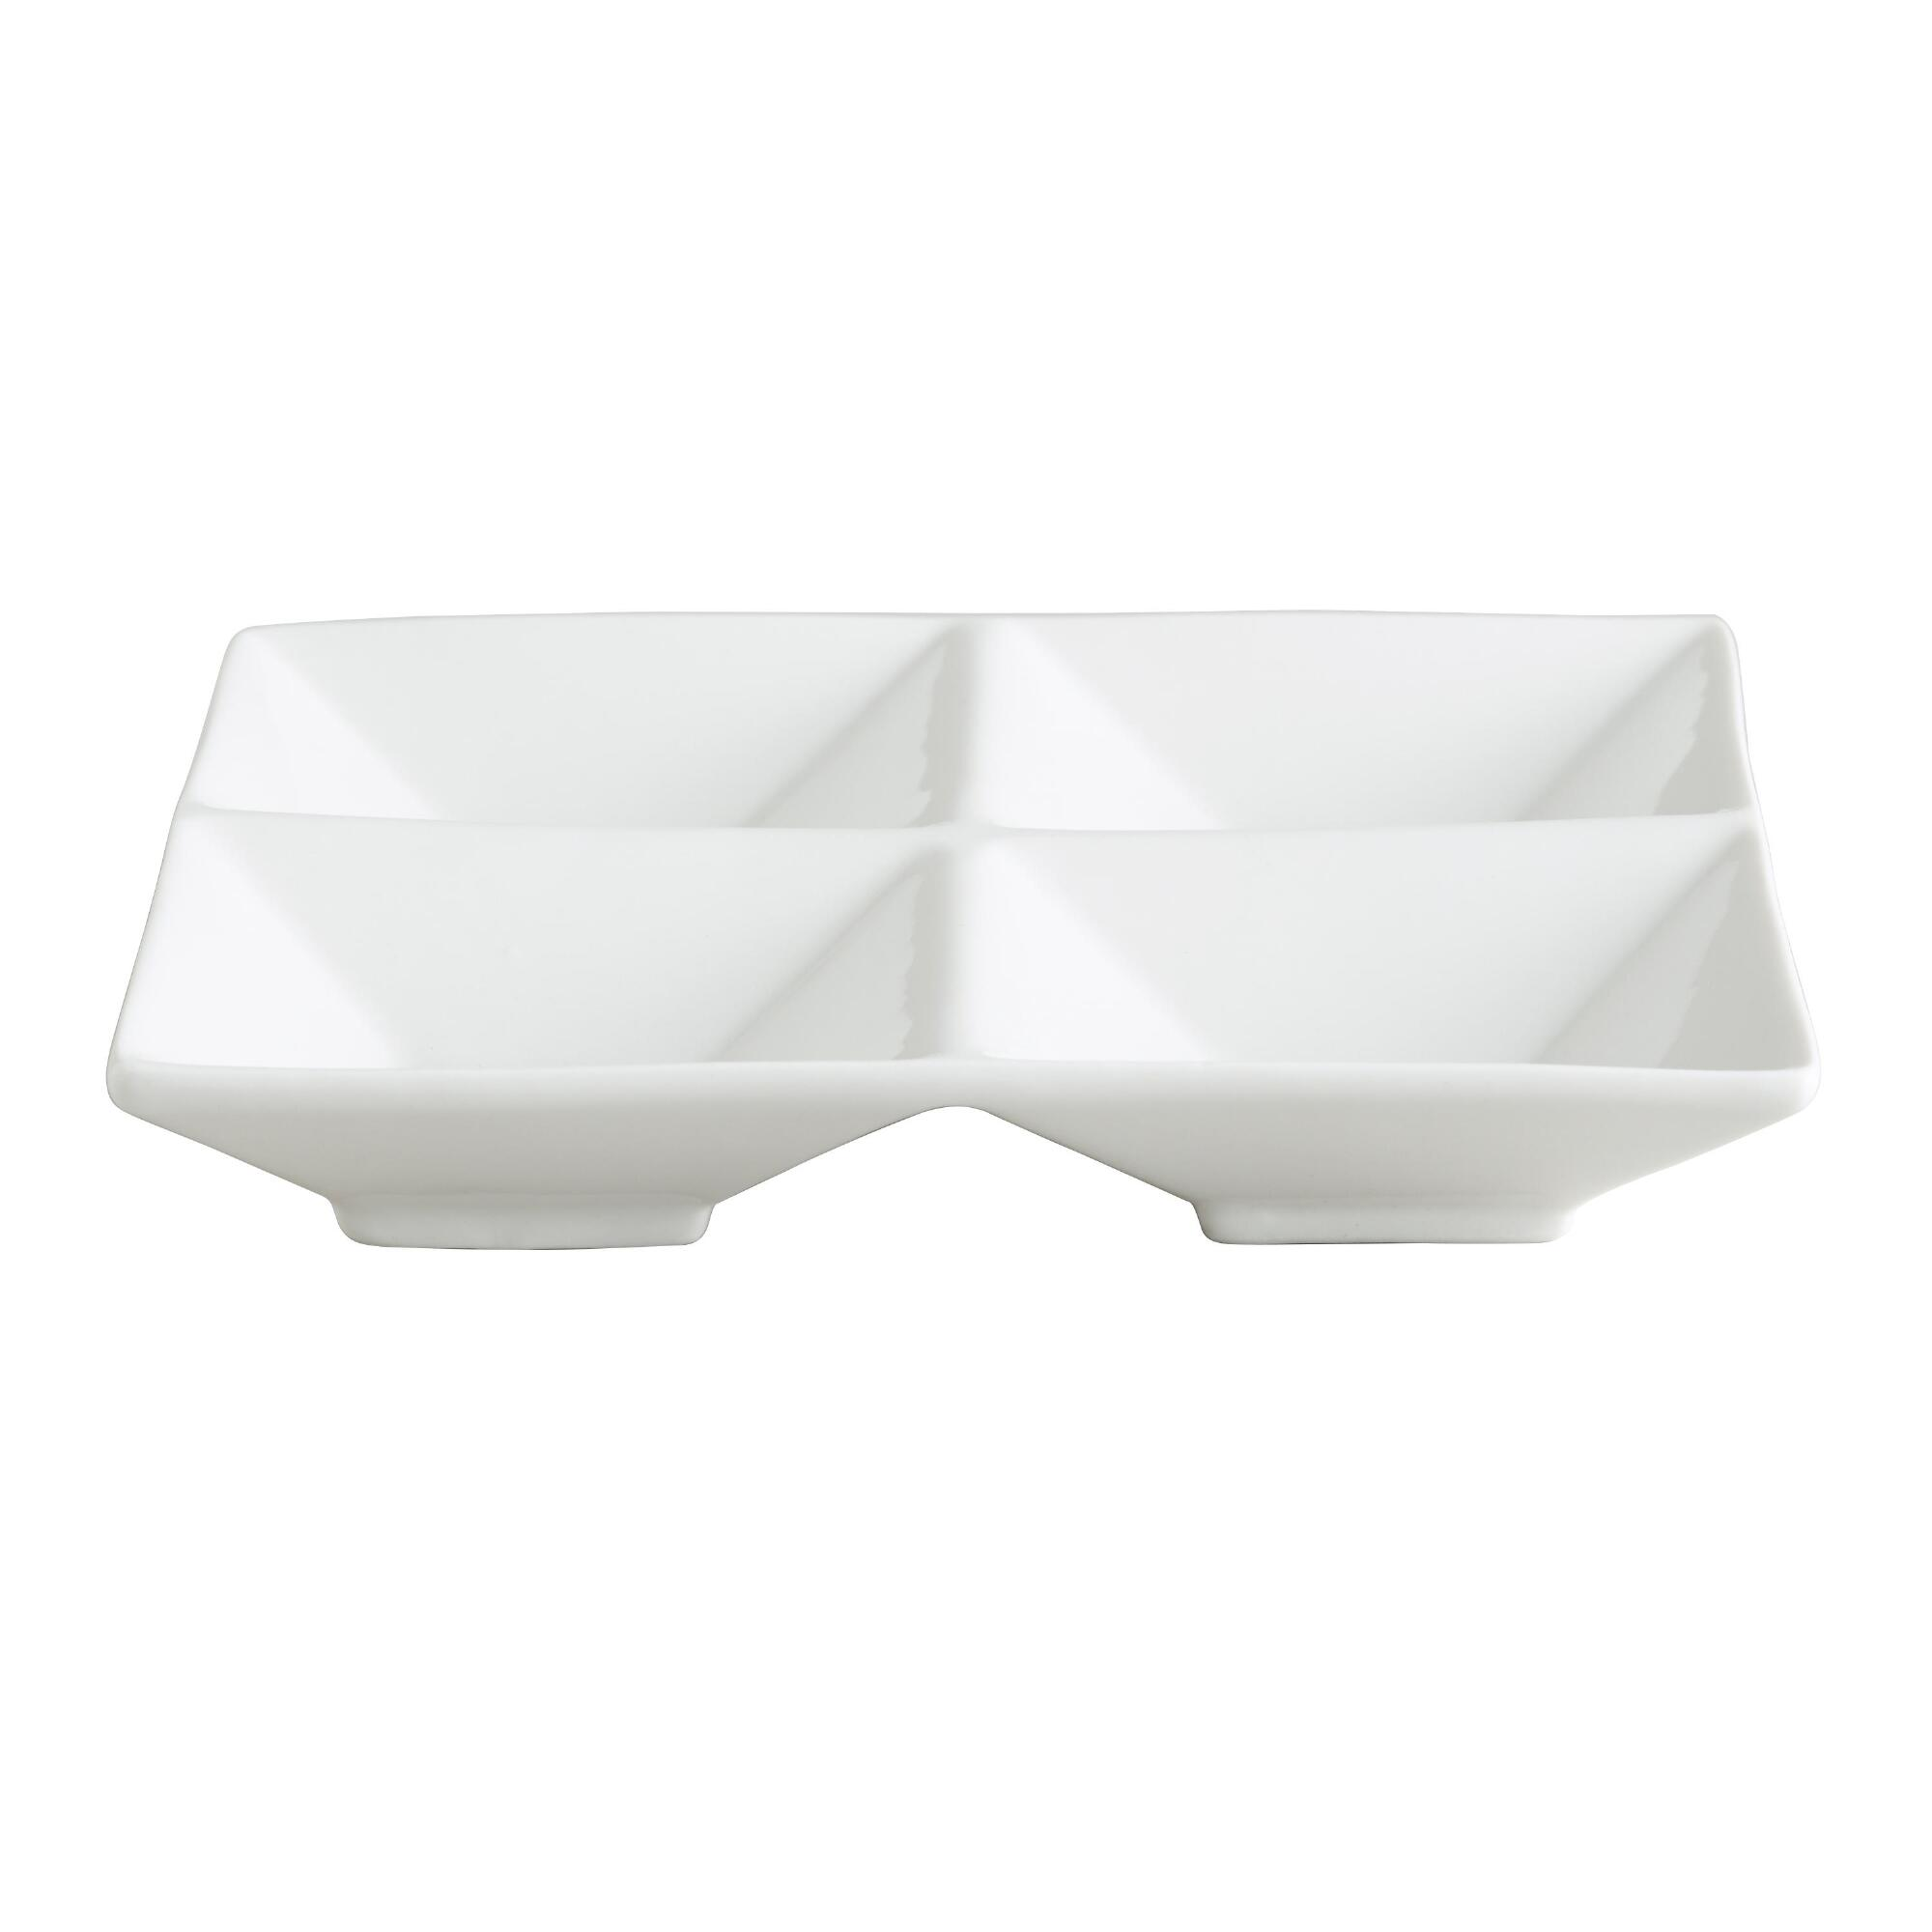 White Porcelain 4-Section Tasting Trays, Set of 6 by World Market